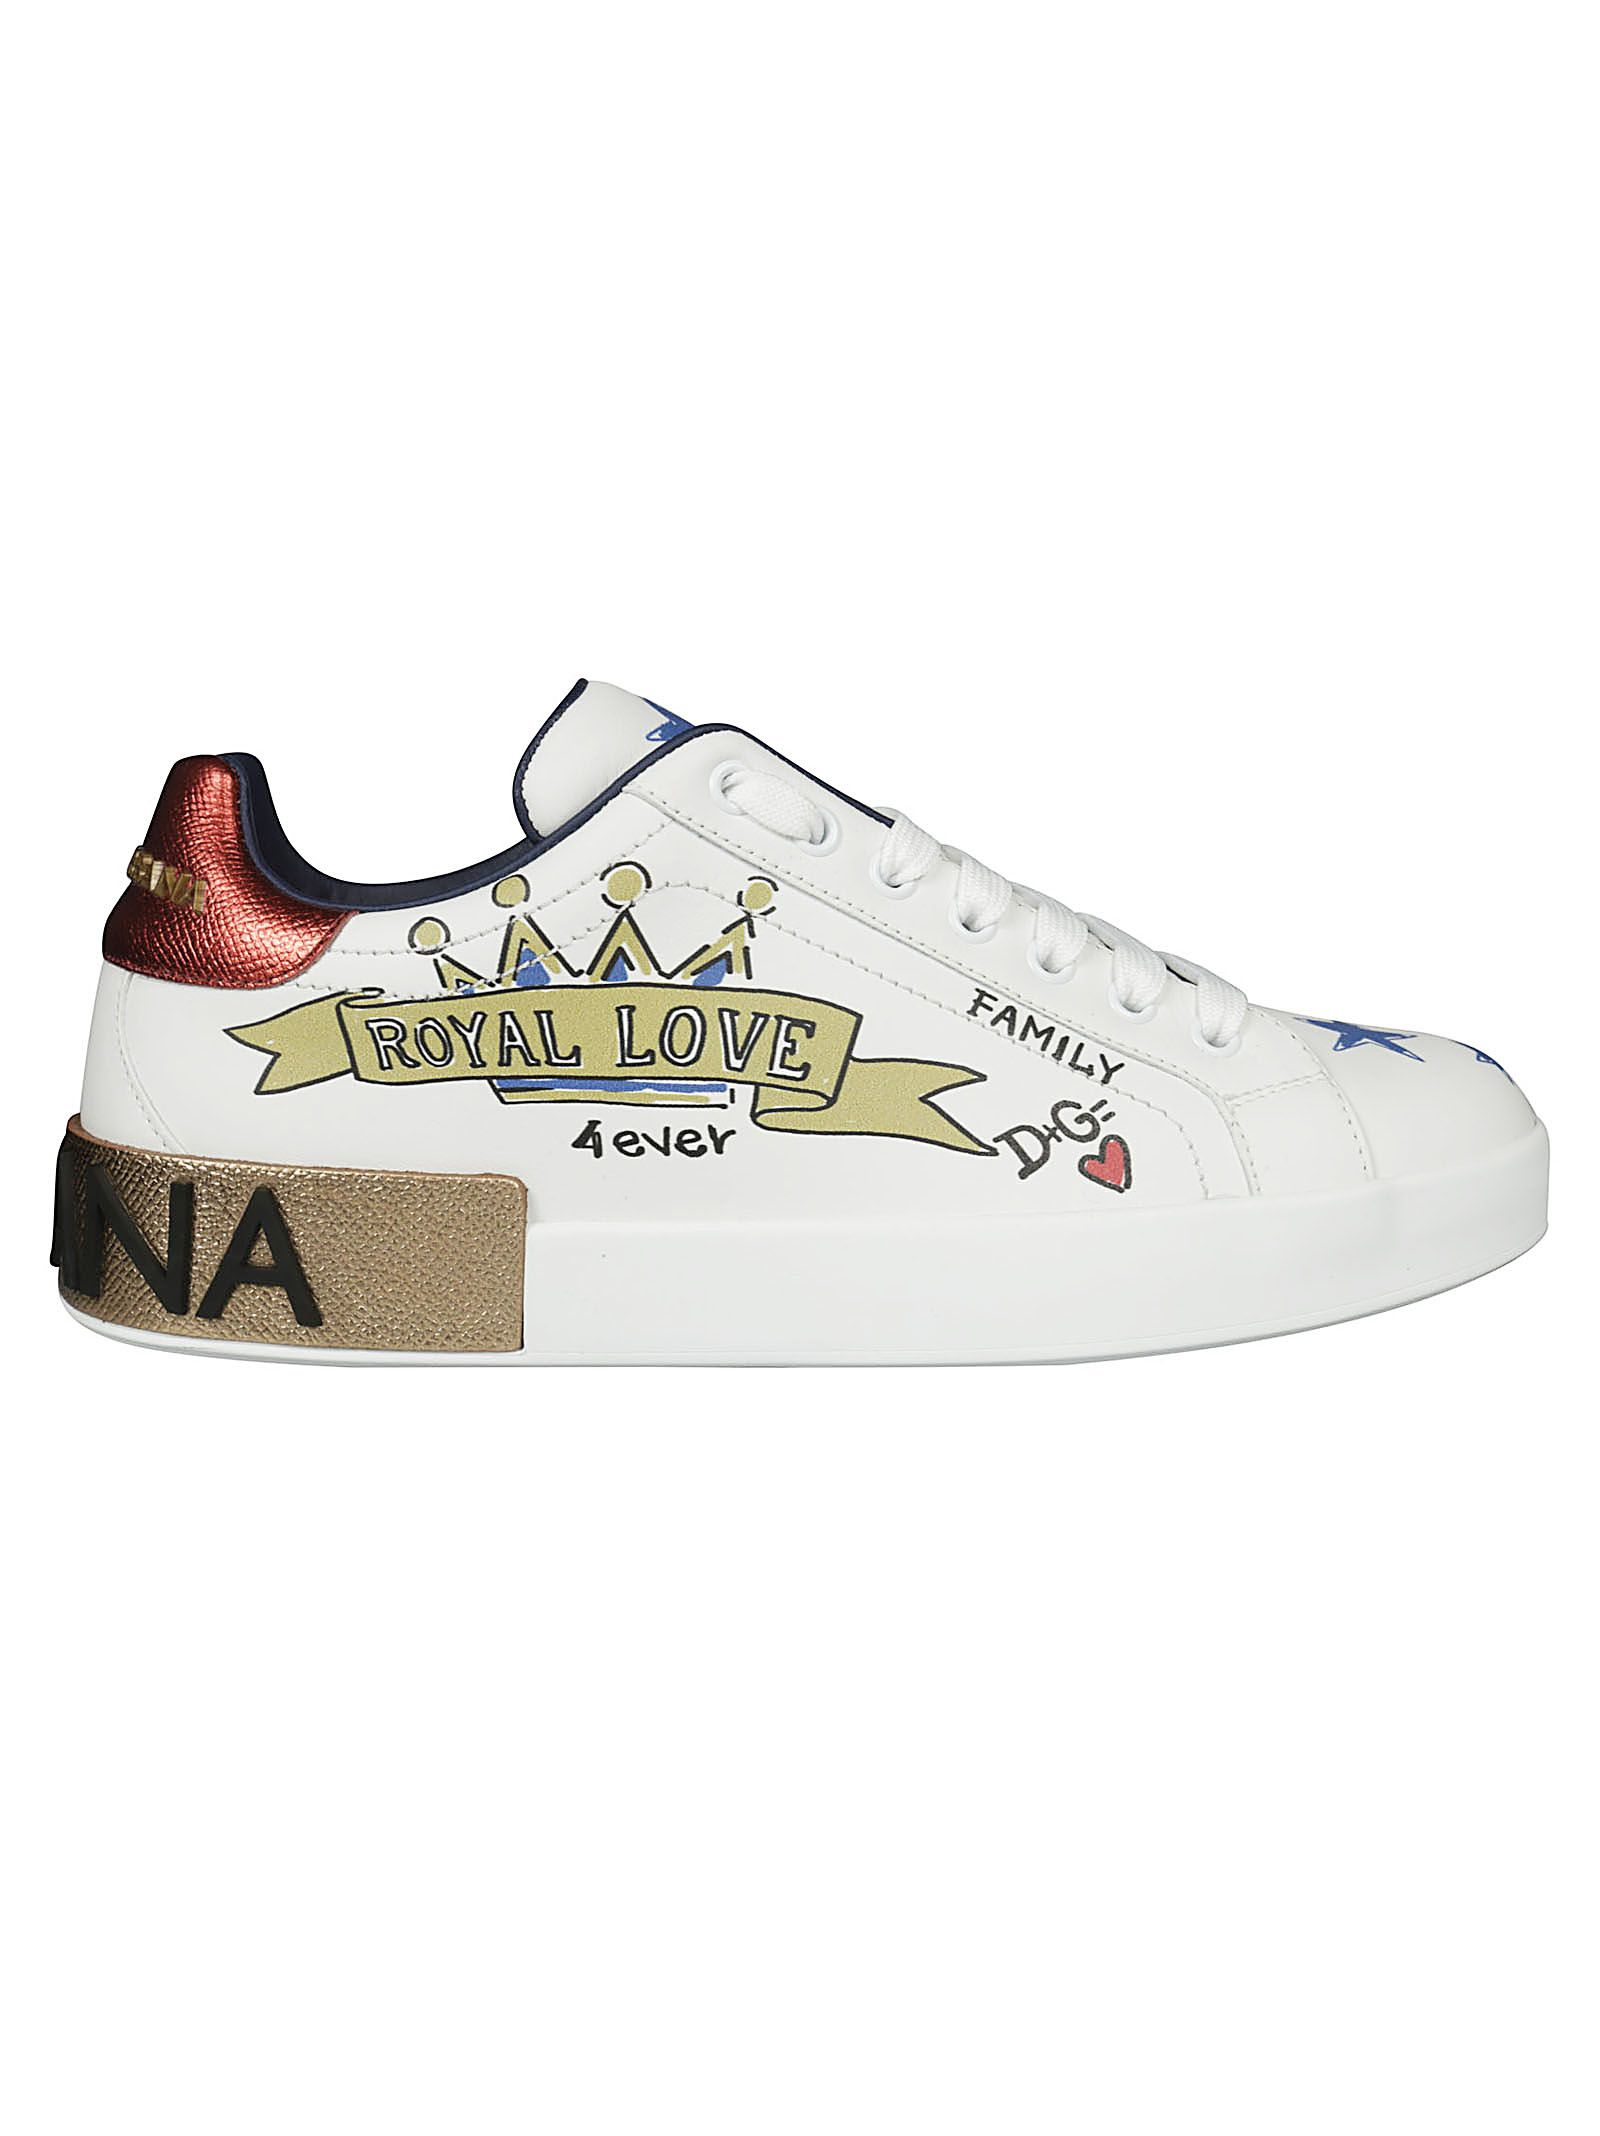 Dolce & Gabbana Leathers PRINTED SNEAKERS